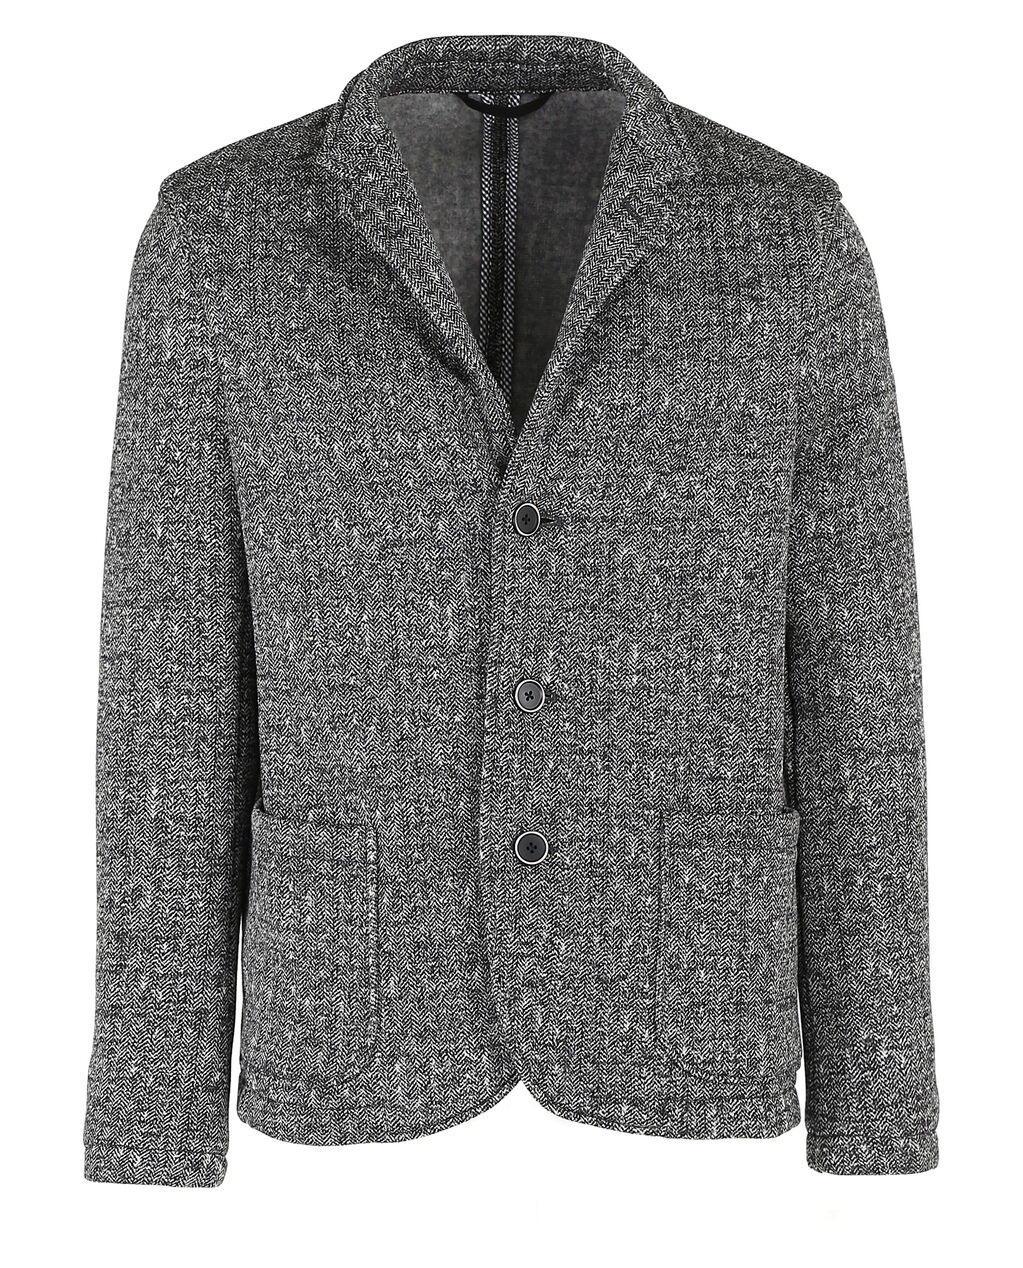 Printed Pile Blazer, MEDIUM GREY MEL, hi-res